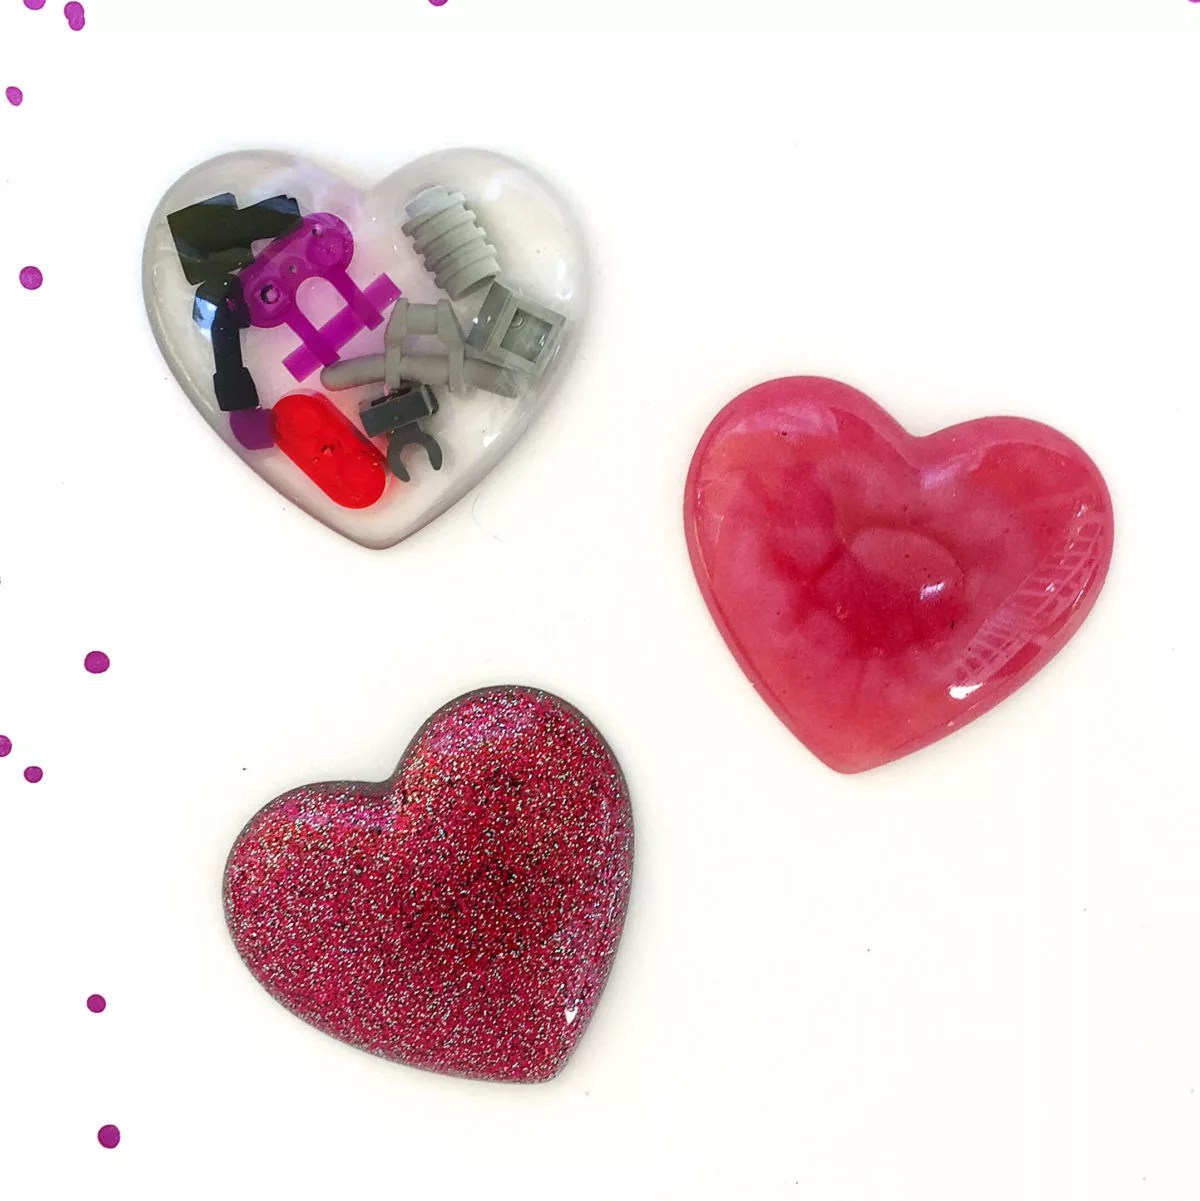 heart charms made with resin